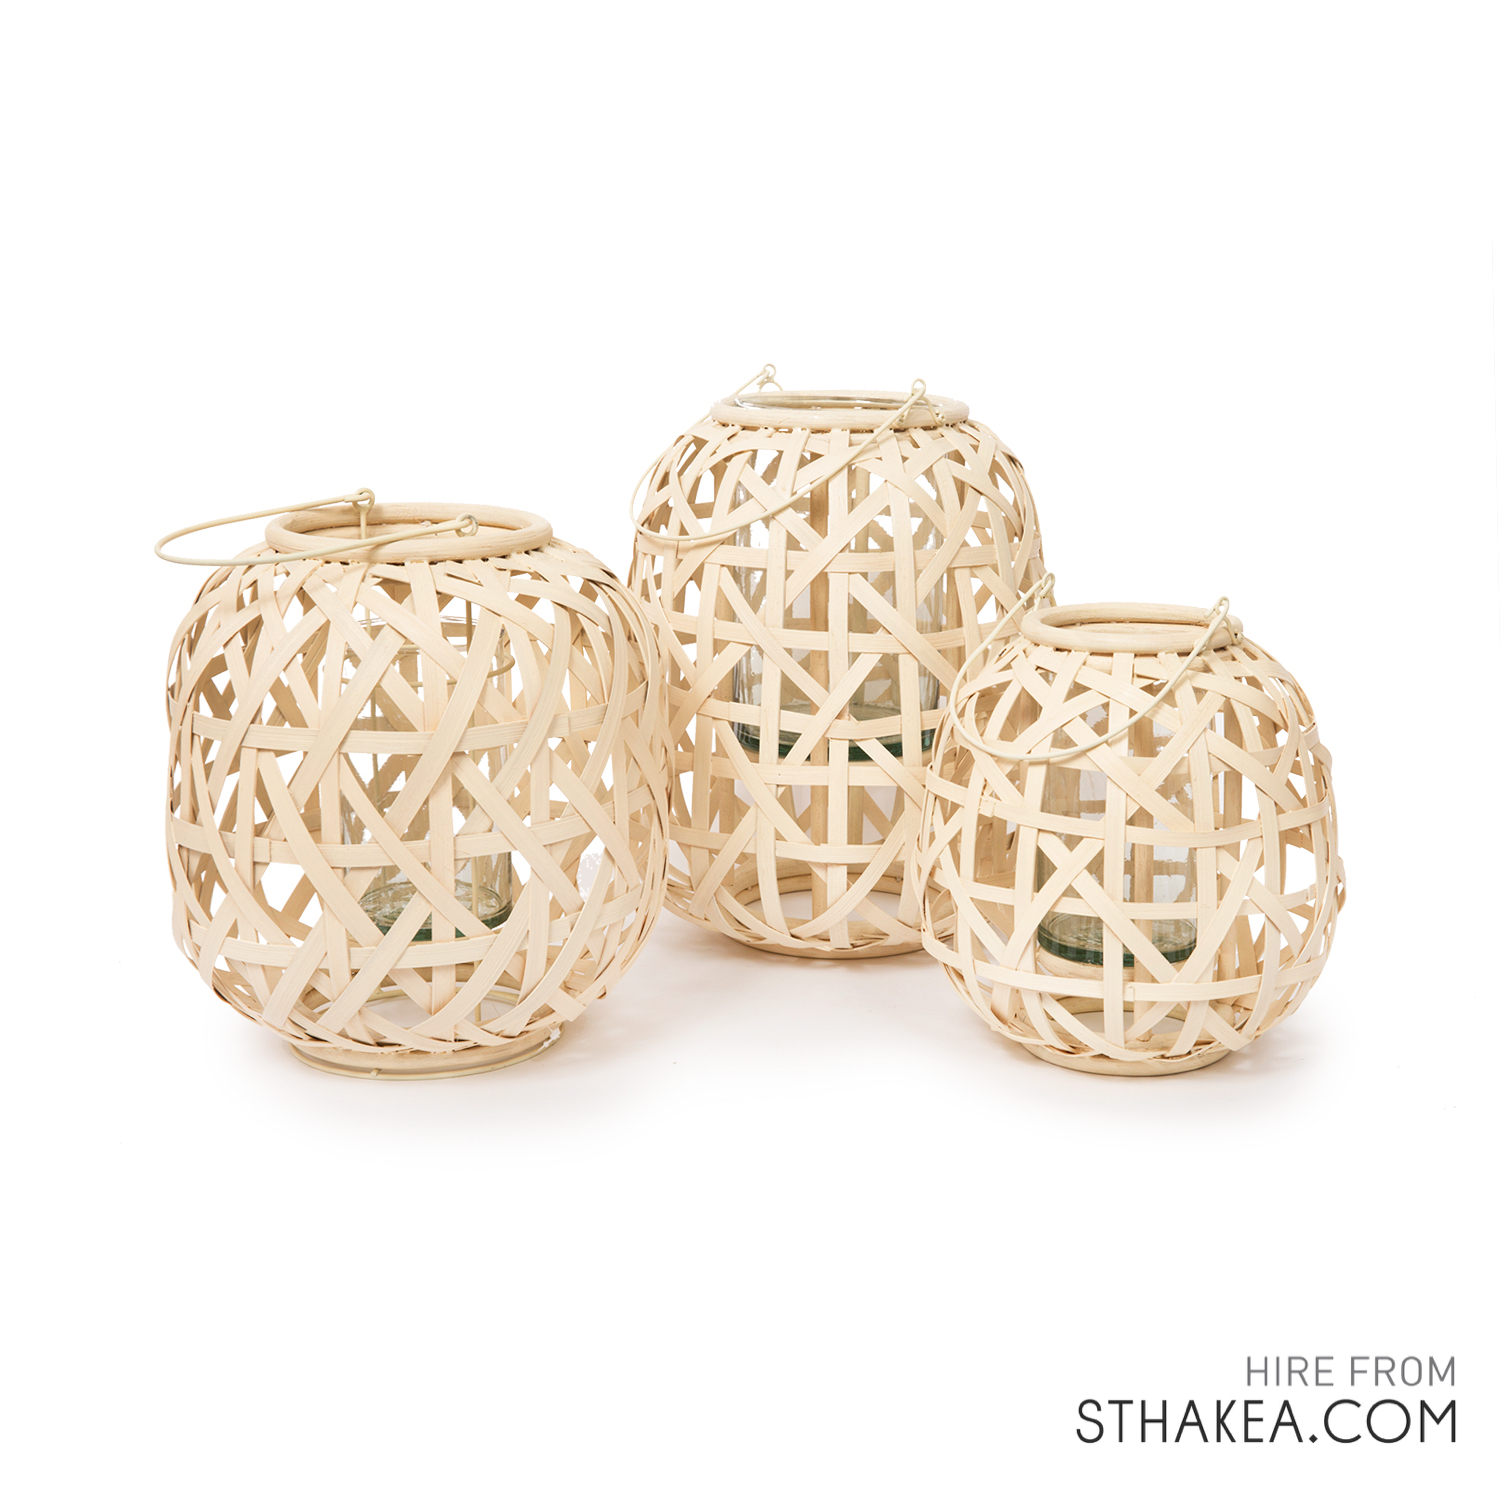 Wicker Lantern Holders